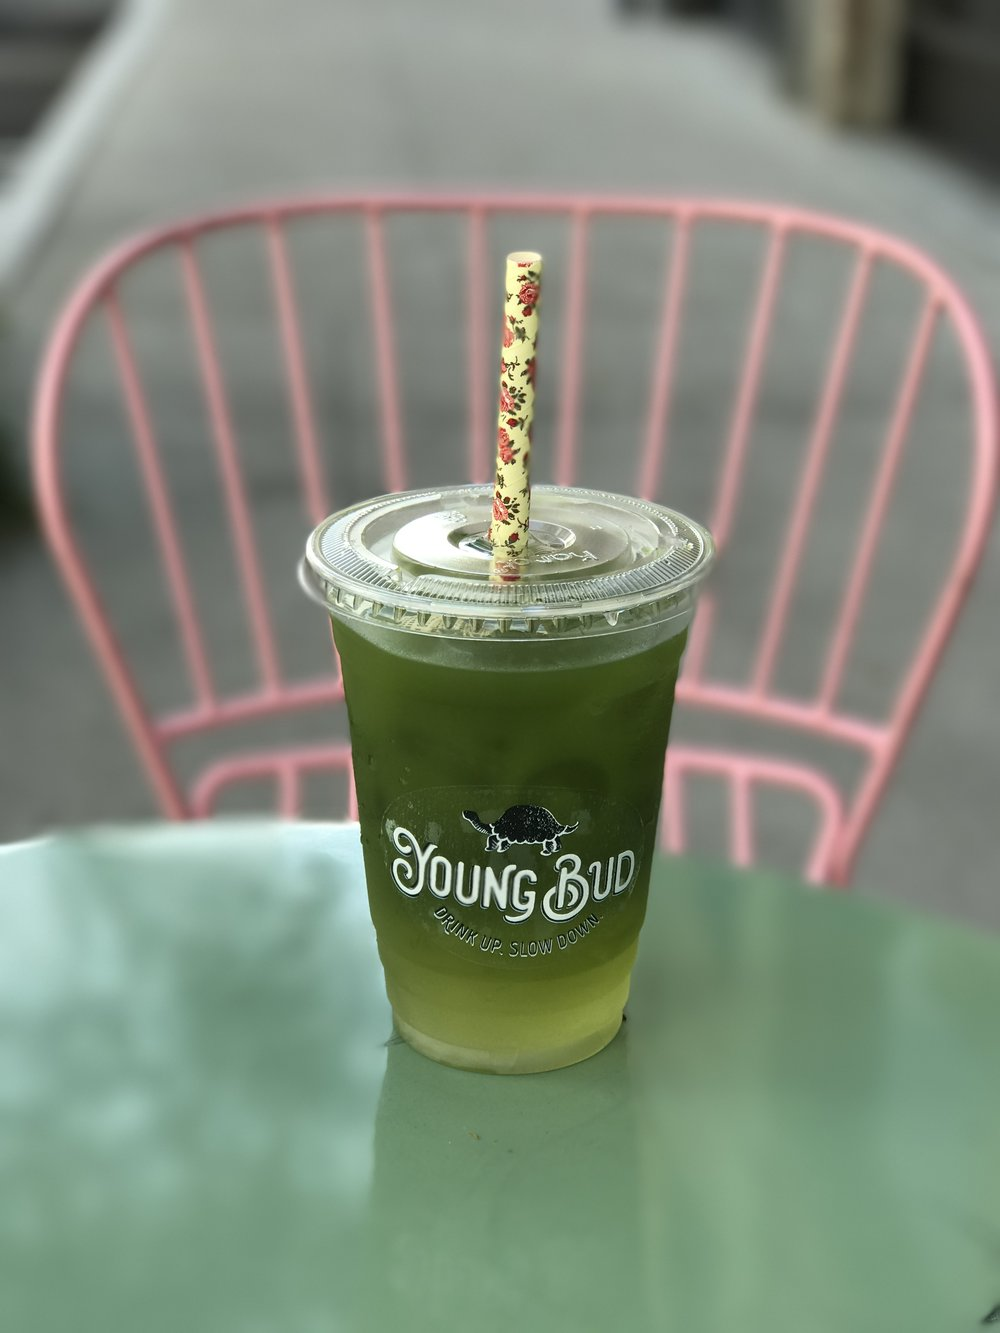 Iced matcha from Young Bud